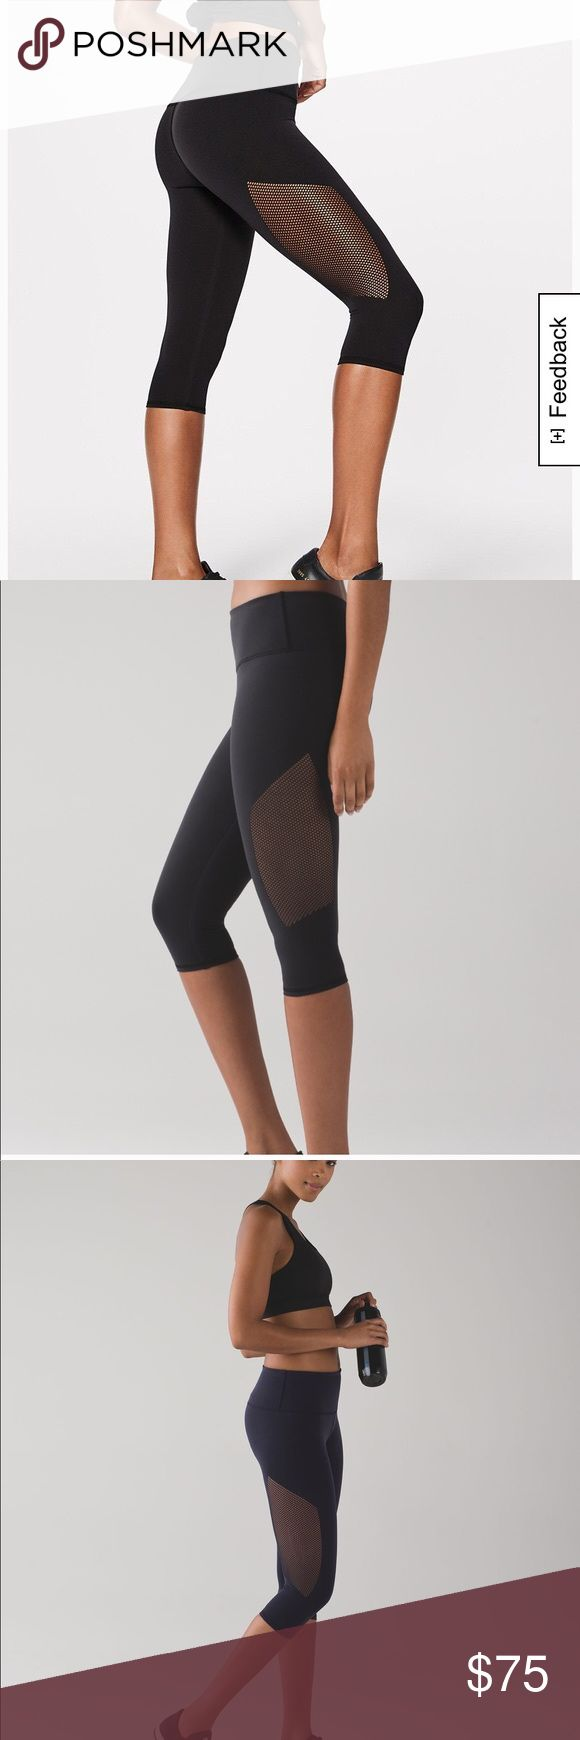 NWT Lululemon Black Reveal Crops Super cute crops from Lululemon with Open hole detailing on the sides. Has pocket in waistband. Fabric is four way stretch which gives you a naked sensation feel so that you are most comfortable! Size 4. NWT never worn before! Sold out online. lululemon athletica Pants Leggings